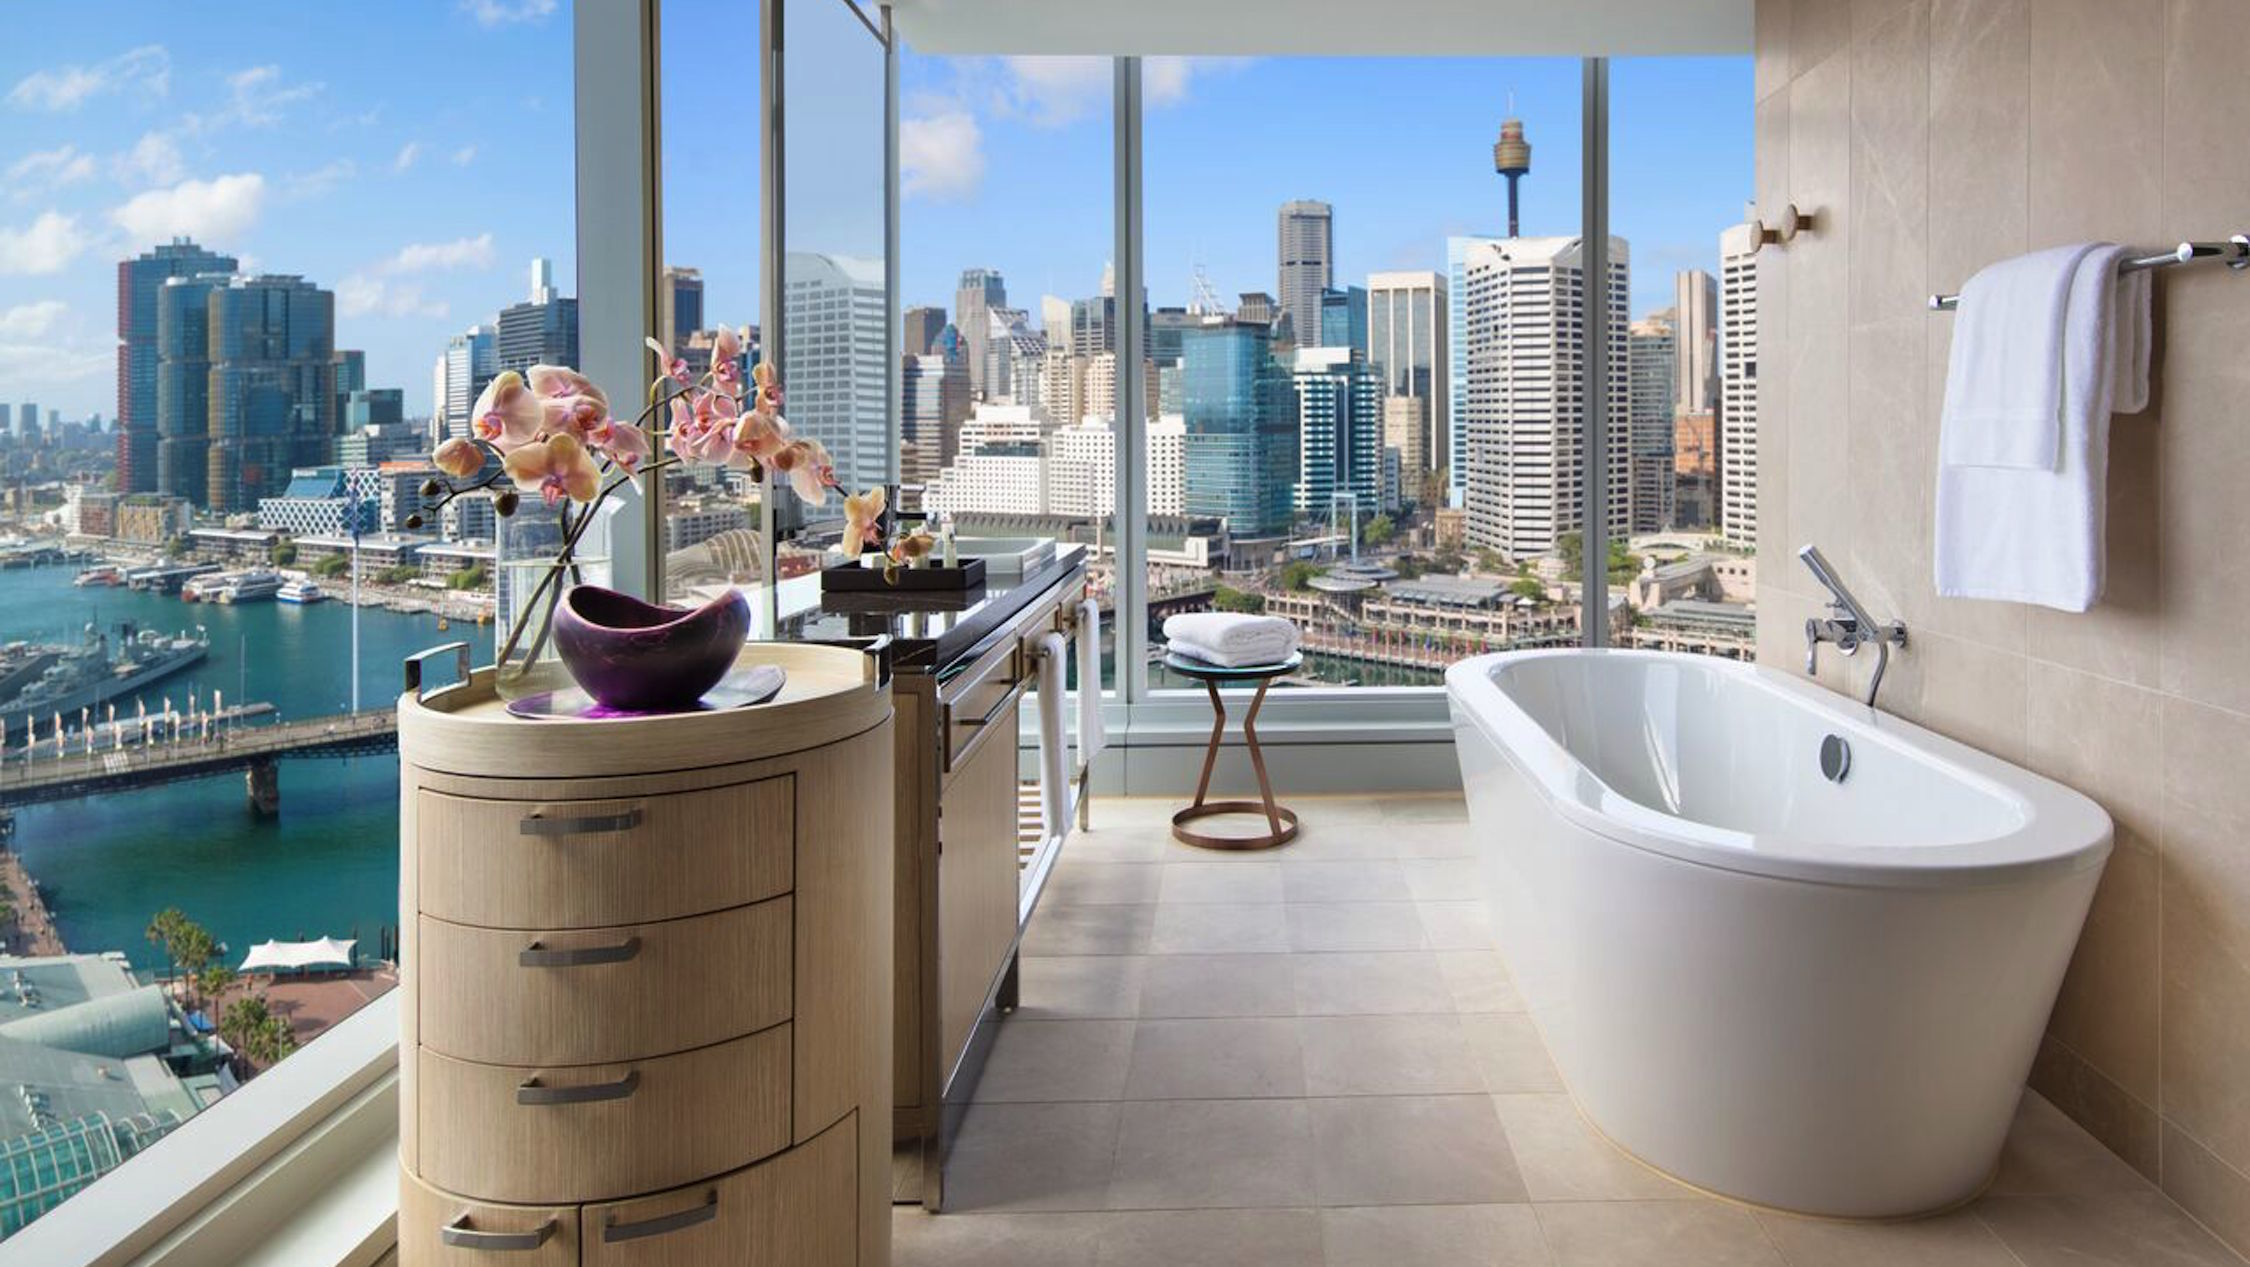 A bathroom of Sofitel Sydney Darling Harbour with a view out over the water